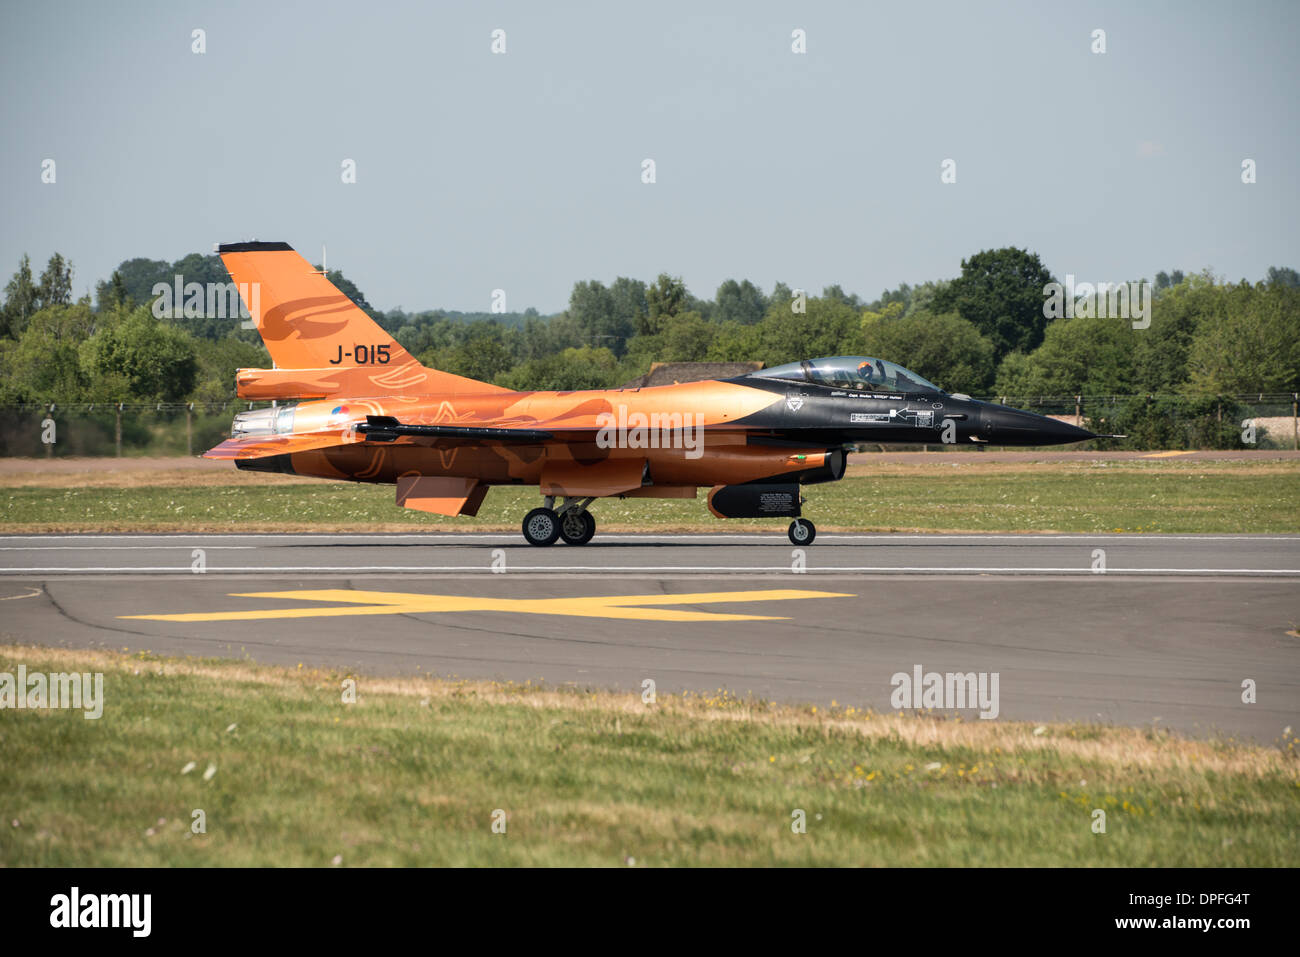 Lockheed Martin F-16 fighter jet of the Royal Netherlands Air Force demonstration team in it's striking orange at RIAT - Stock Image